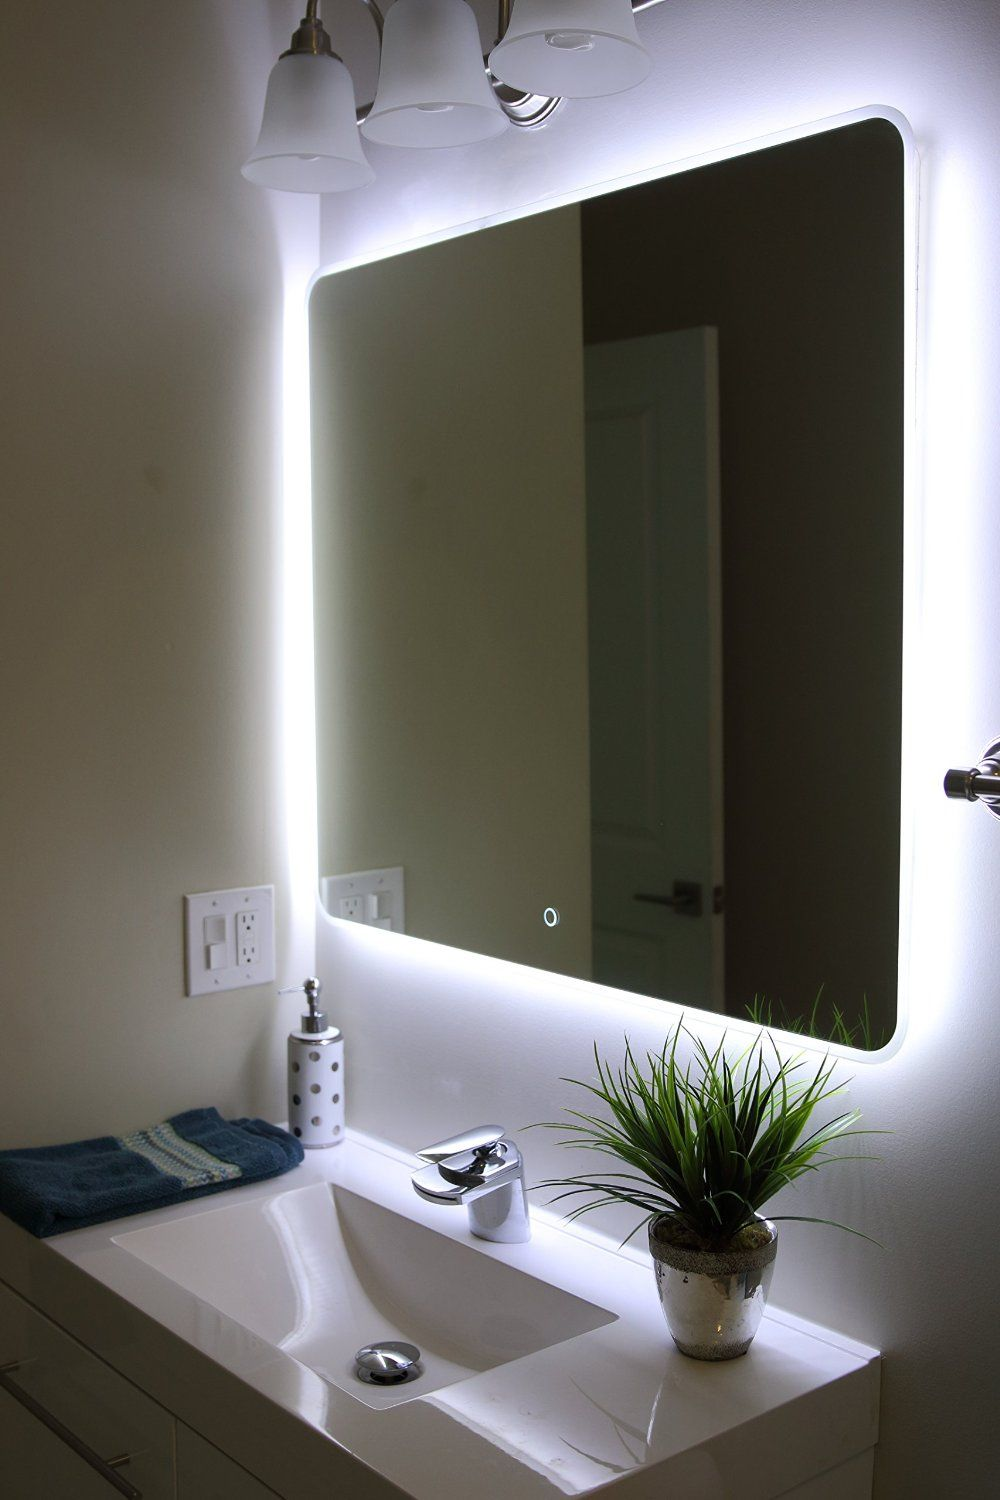 Bathroom Vanity Lighting Placement windbay backlit led light bathroom vanity sink mirror. illuminated